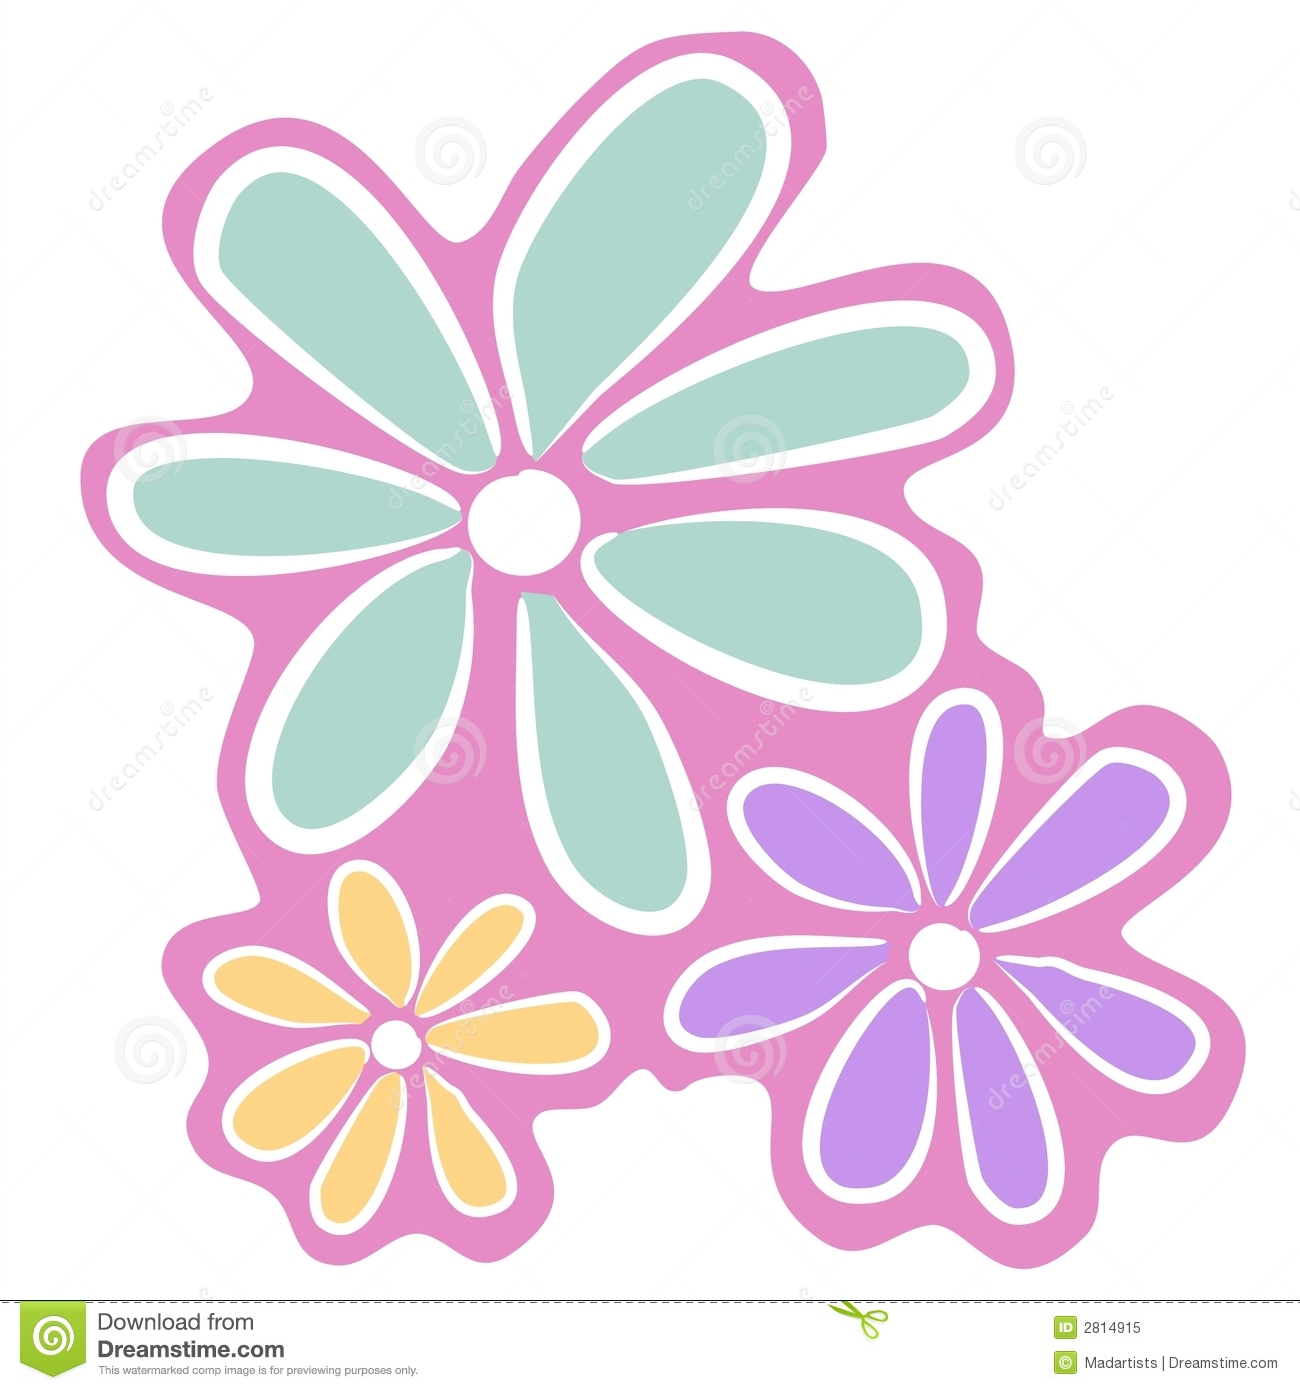 Light pink flower clipart clipart panda free clipart images clipart flower mightylinksfo